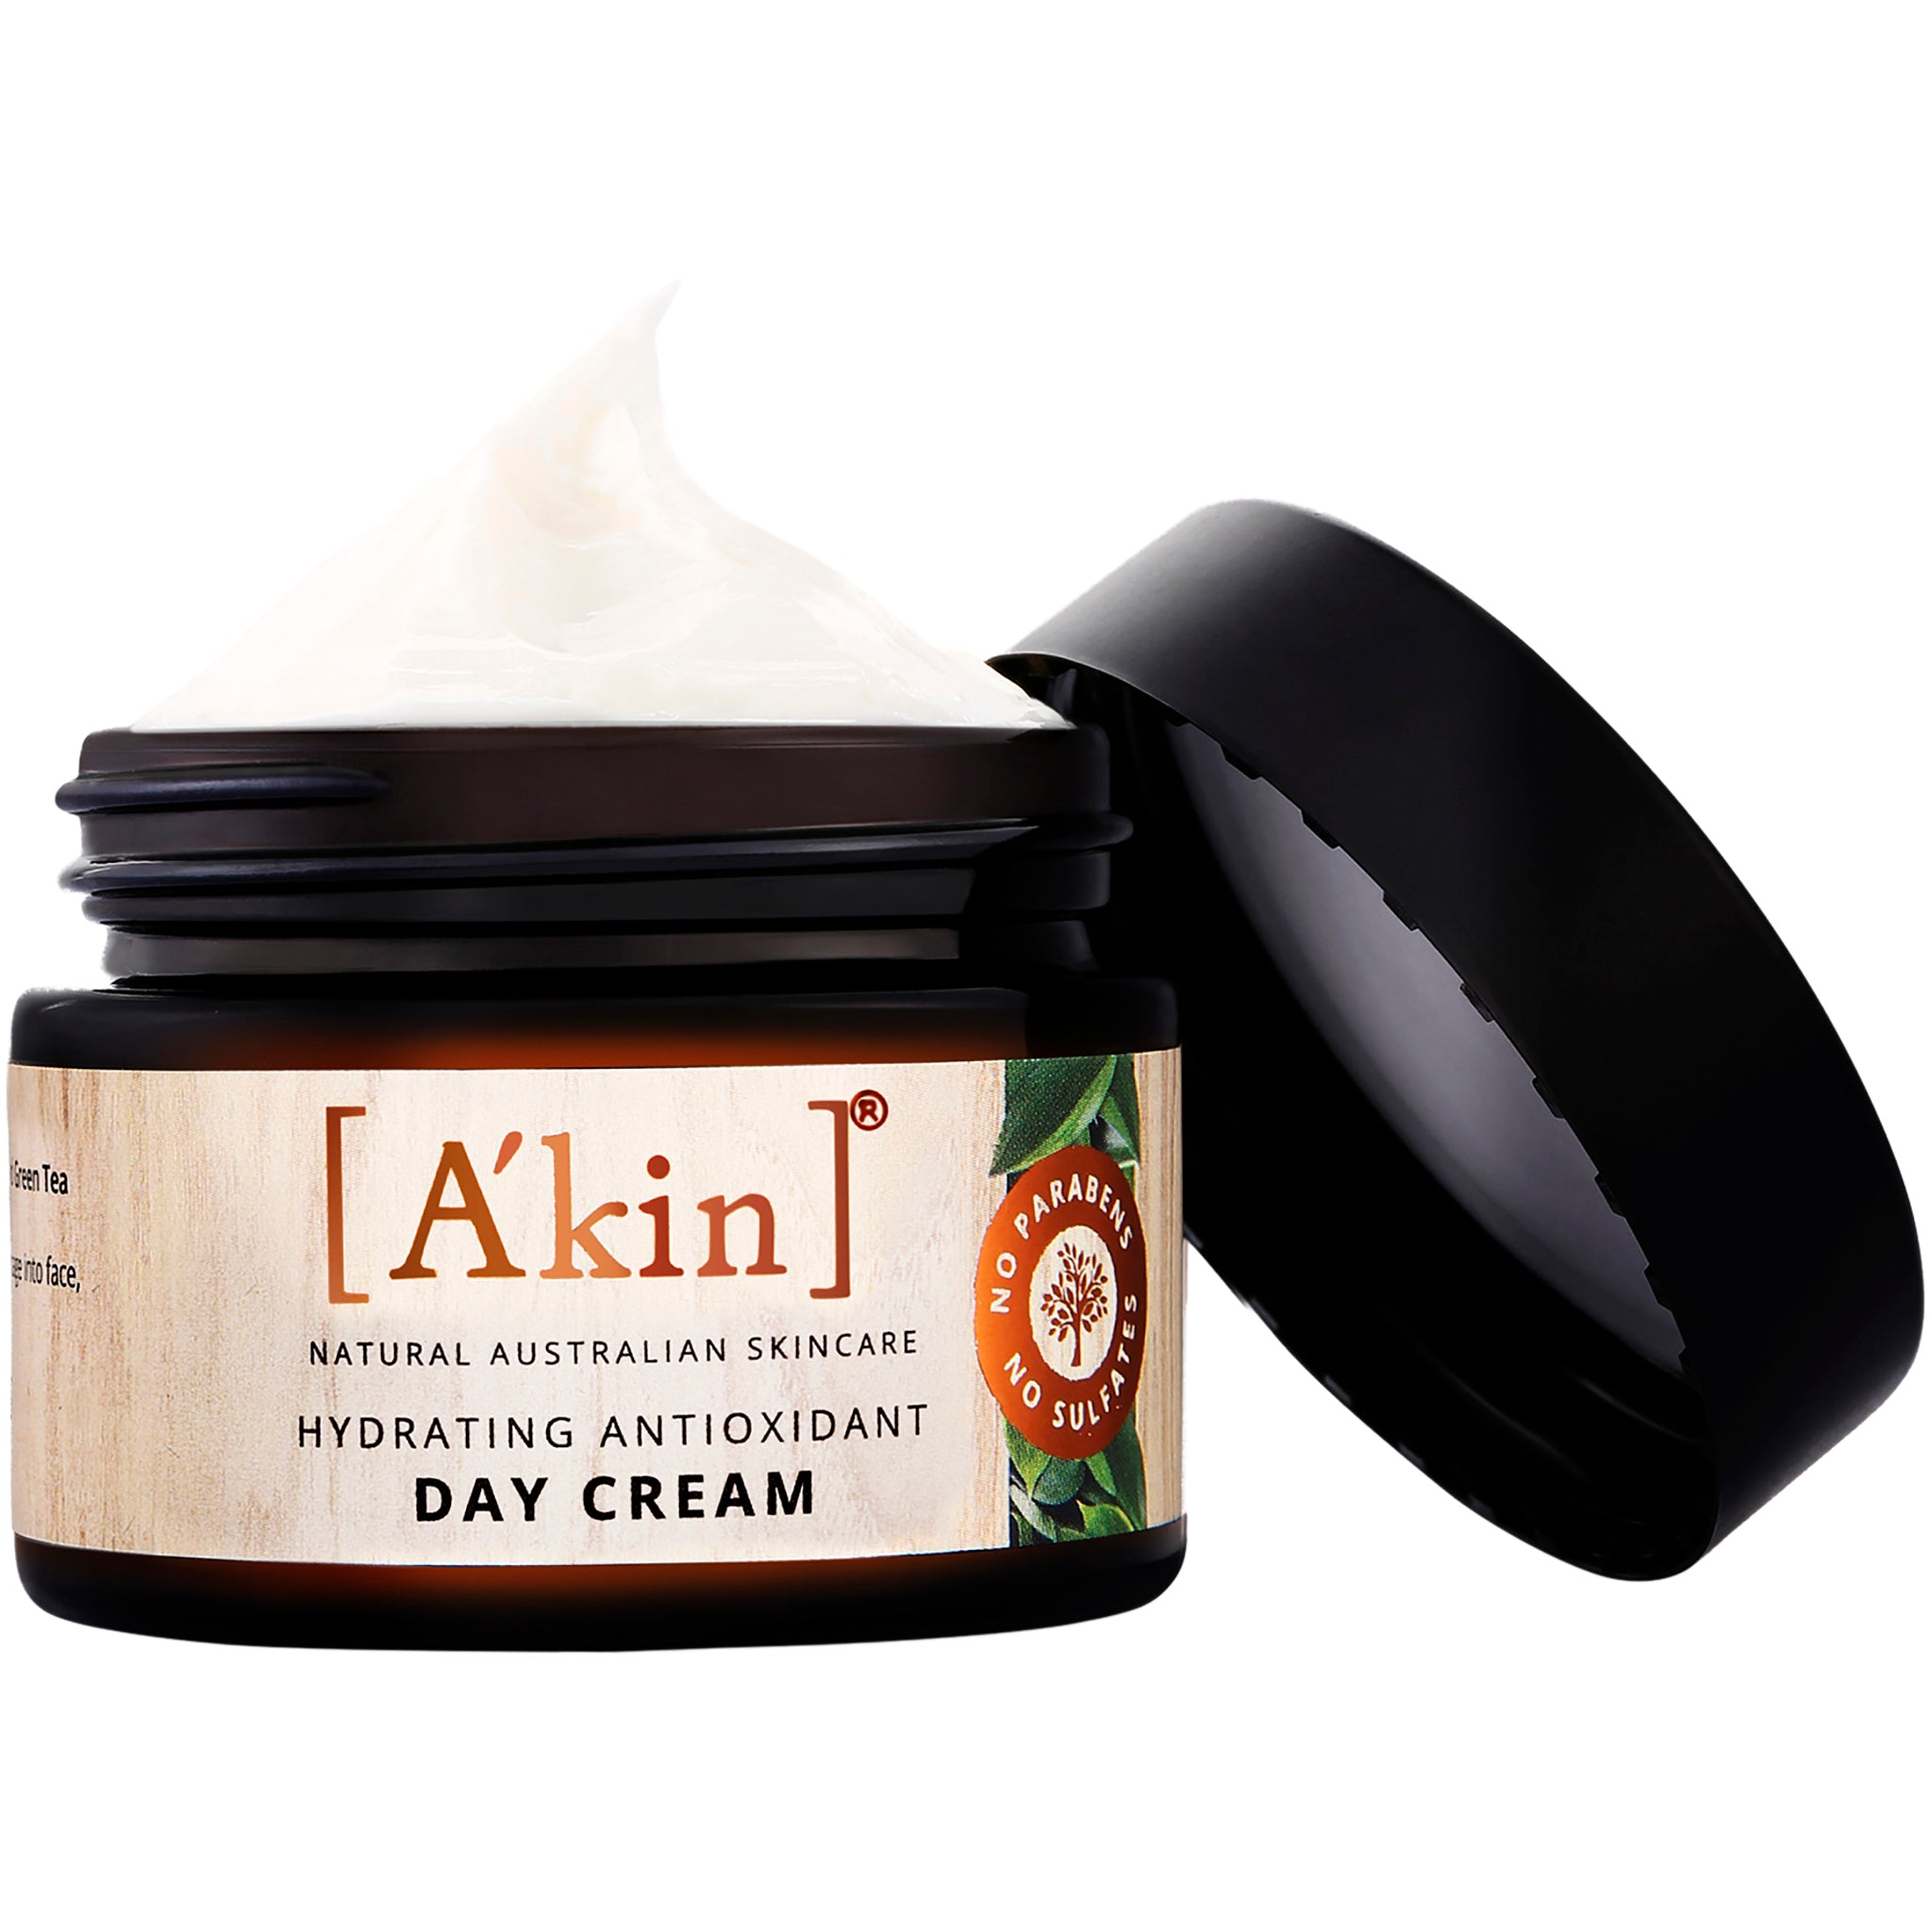 Hydrating Antioxidant Day Cream